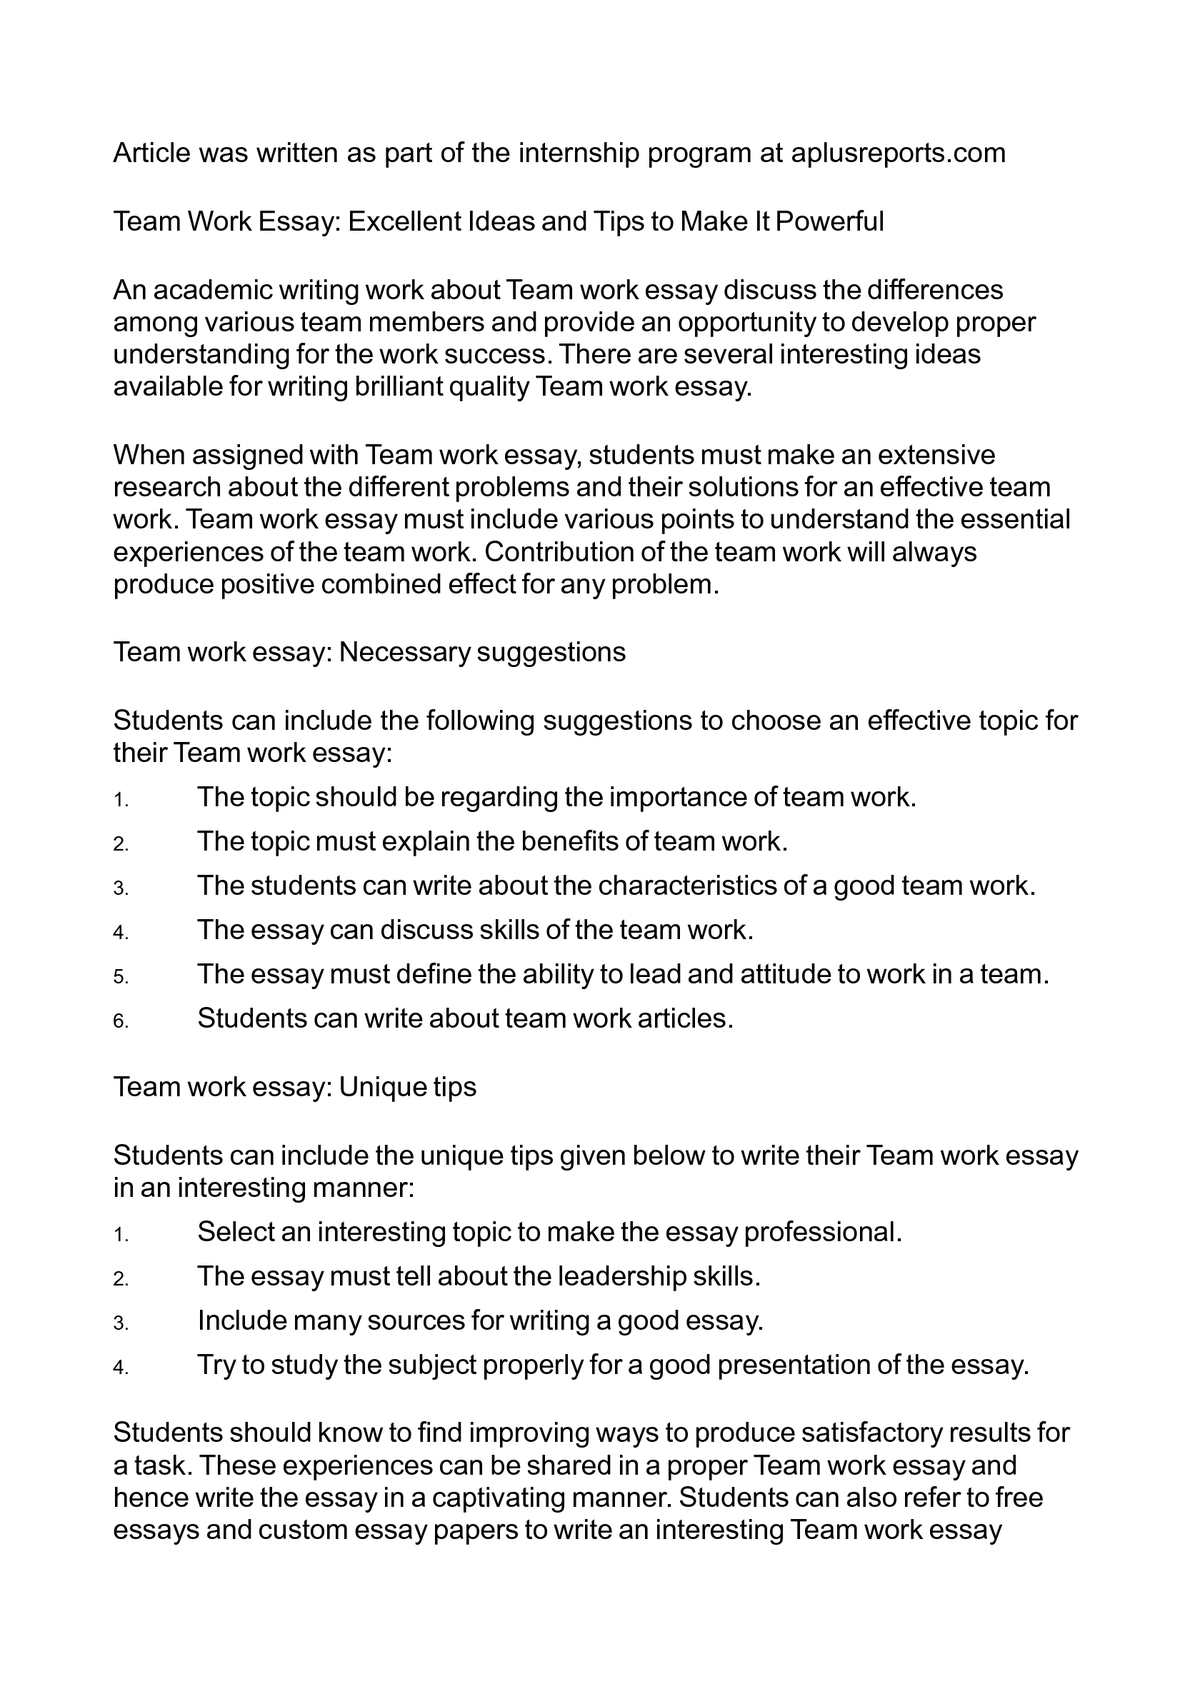 How to Produce a Powerful Essay